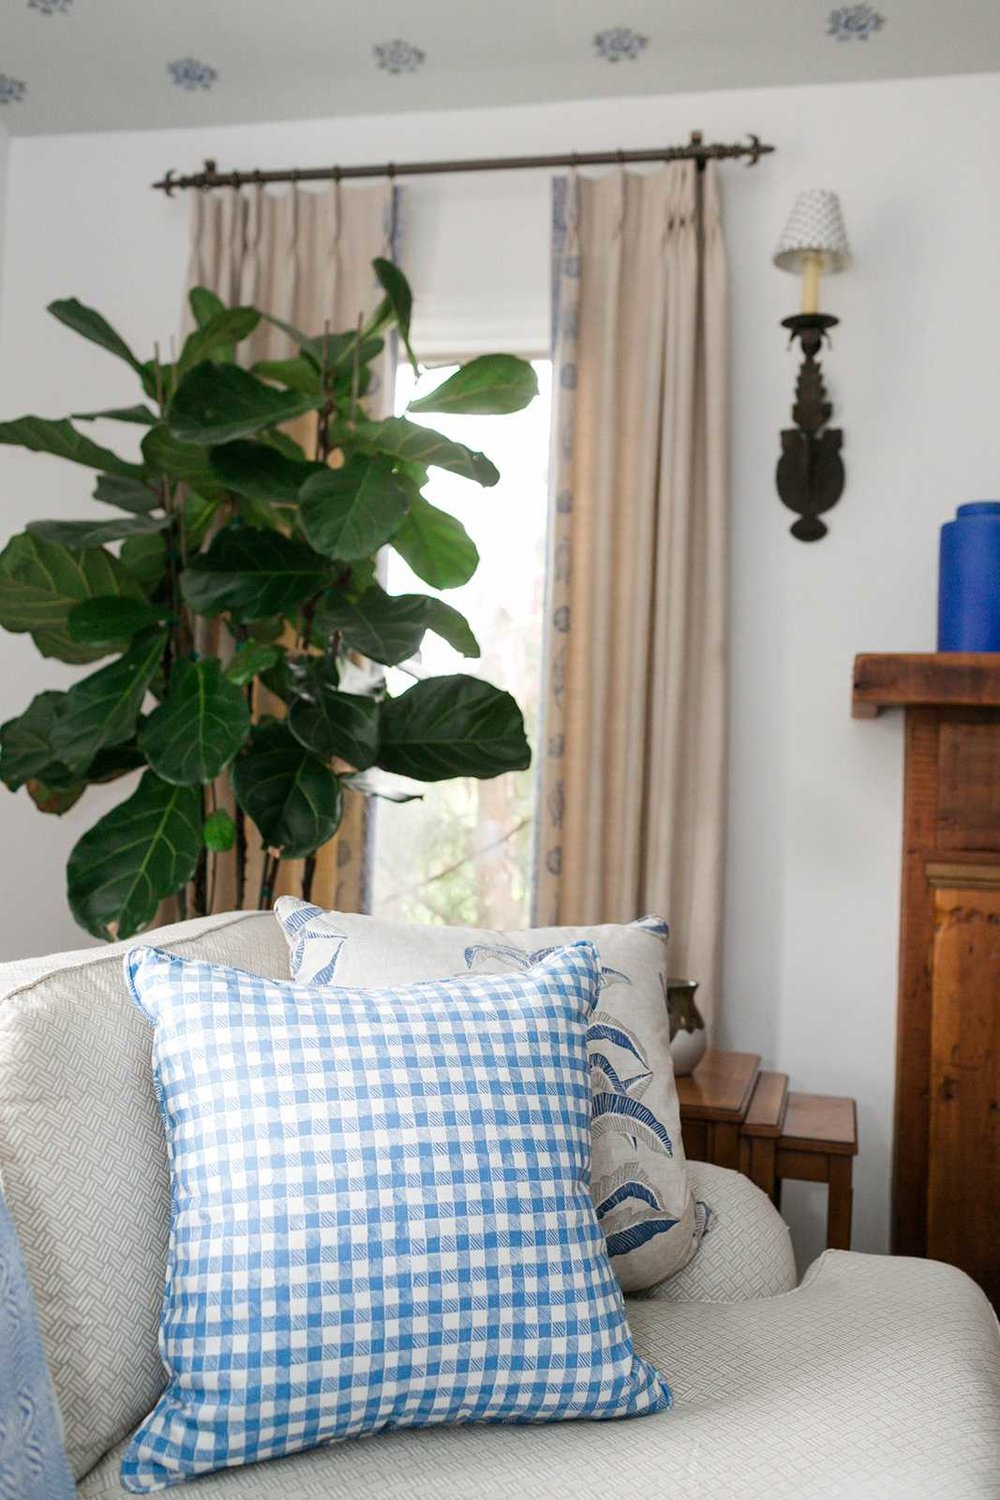 Block Print Gingham pillow in Blue, Photo by Karyn Millet